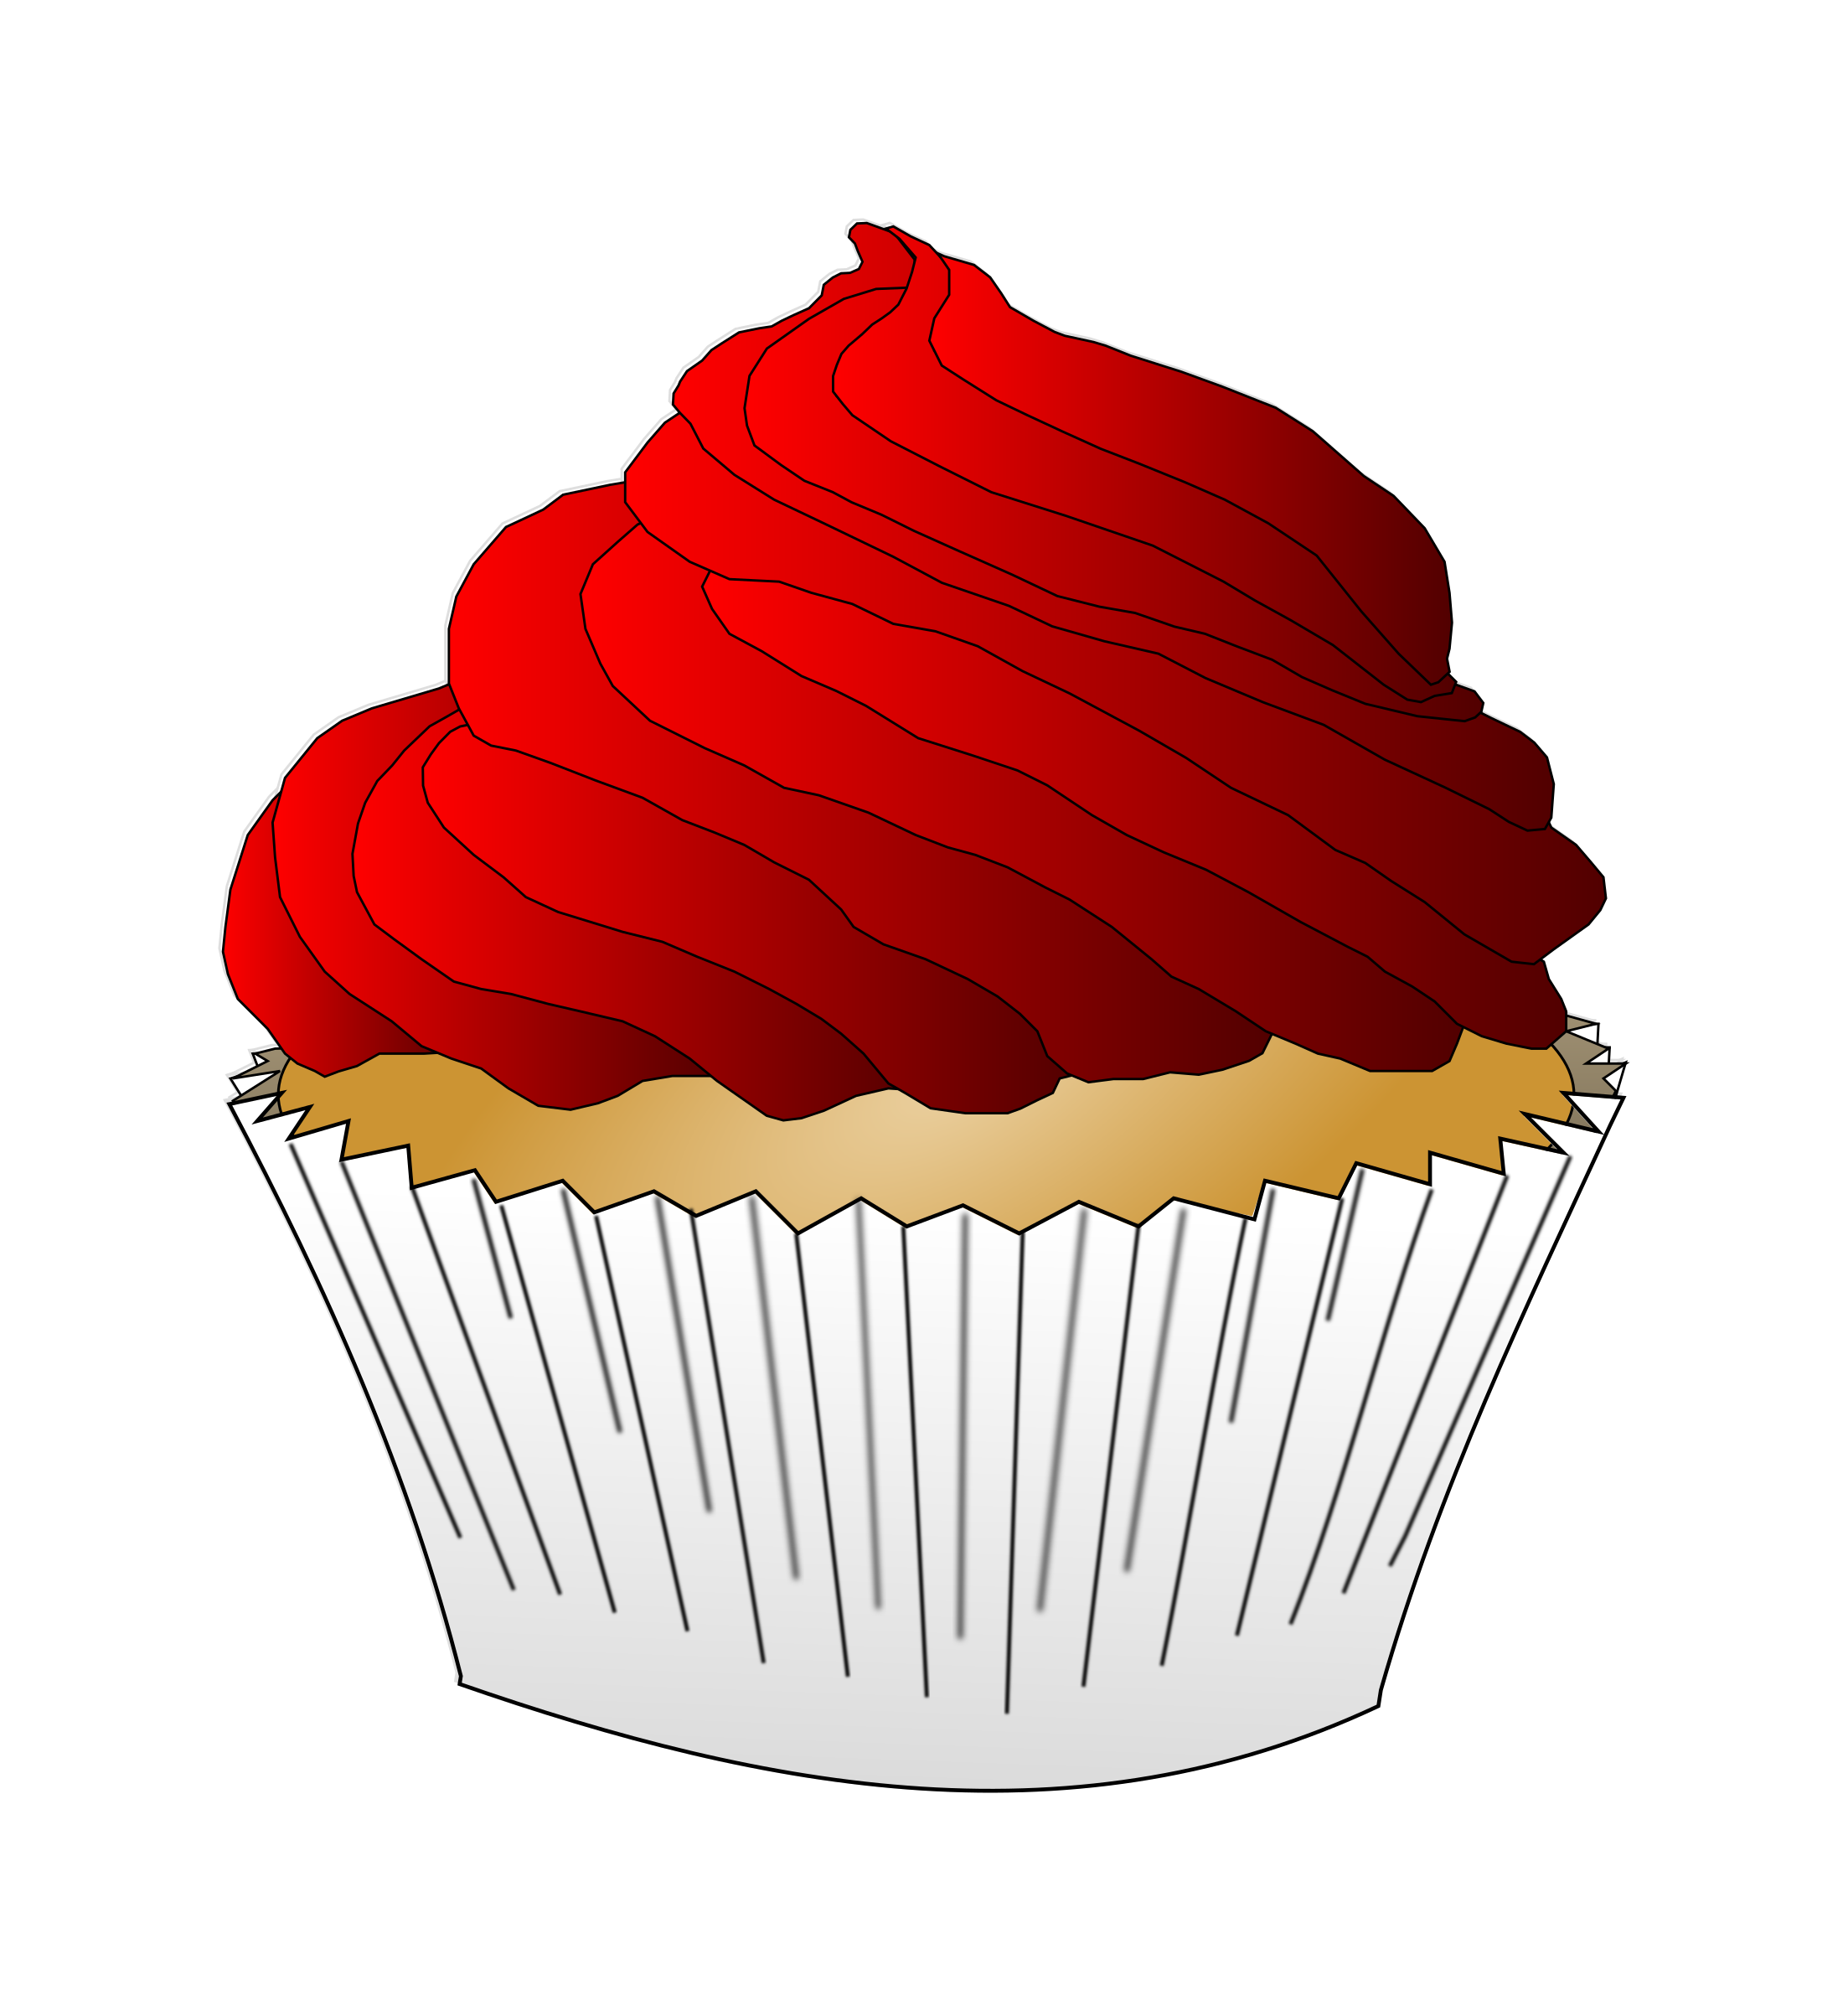 Red Frosting Cupcake by PinkJellyfish